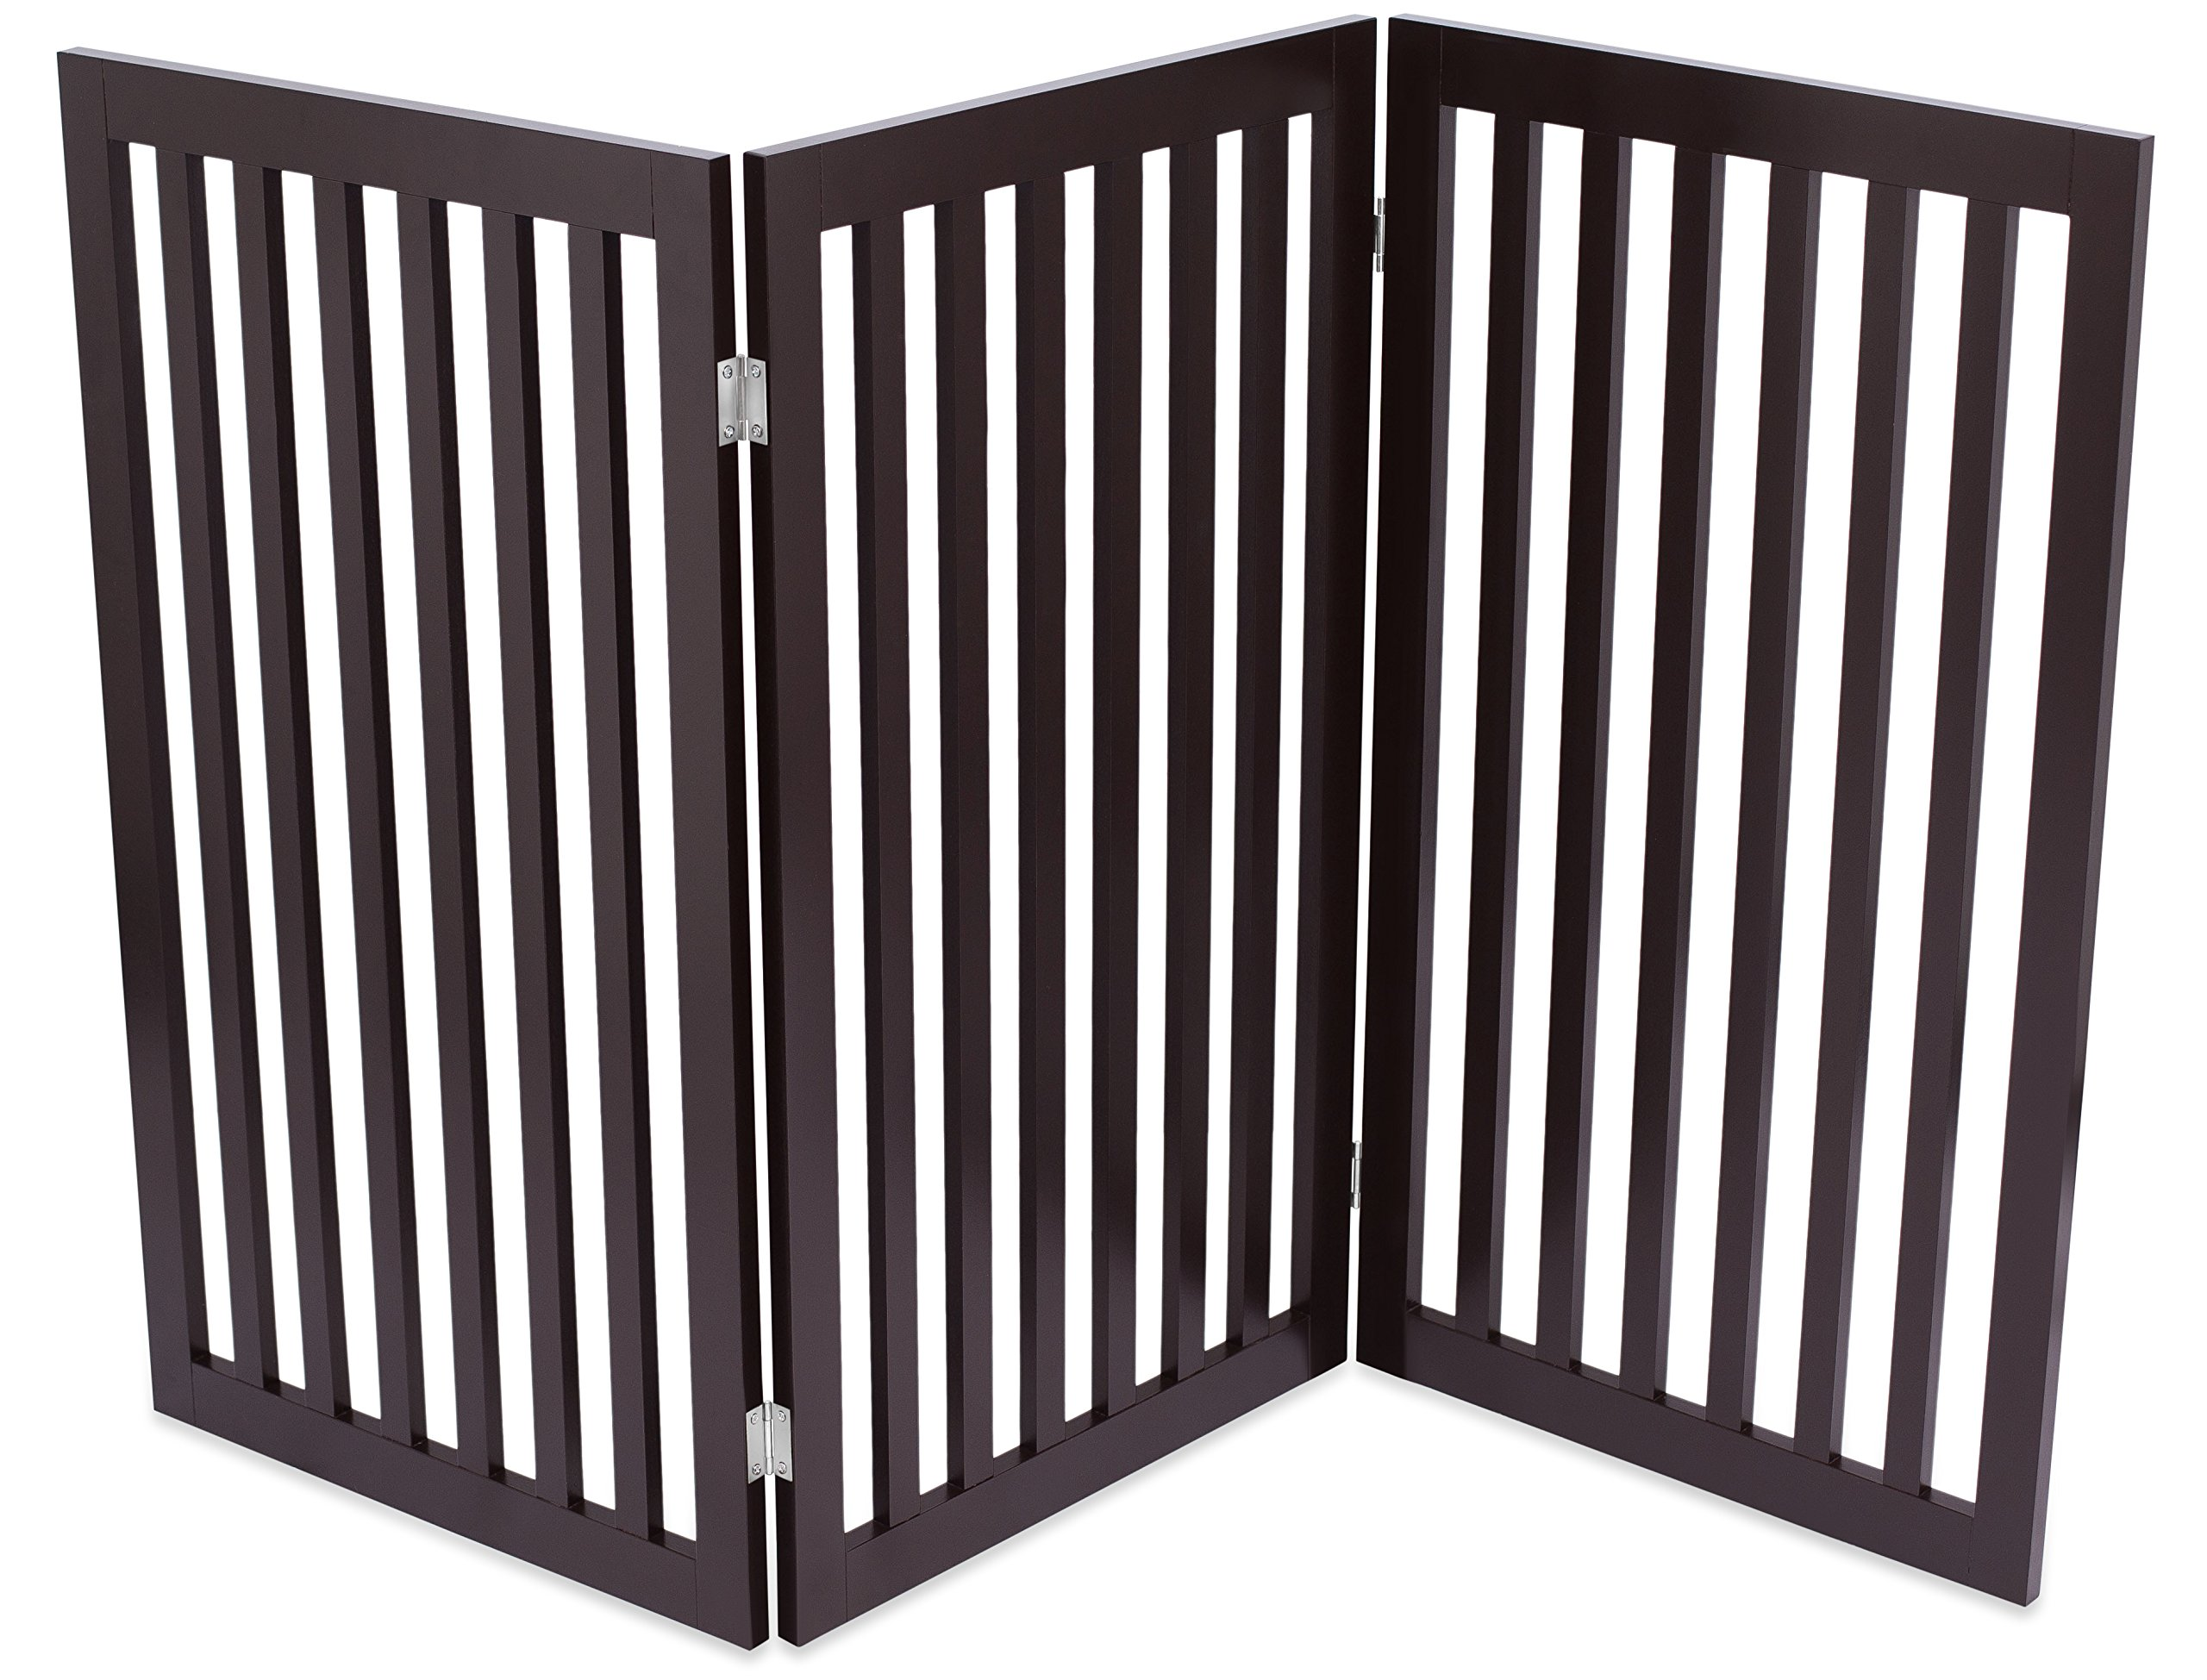 Internet's Best Traditional Pet Gate | 3 Panel | 36 Inch Tall Fence | Free Standing Folding Z Shape Indoor Doorway Hall Stairs Dog Puppy Gate | Espresso | Wooden